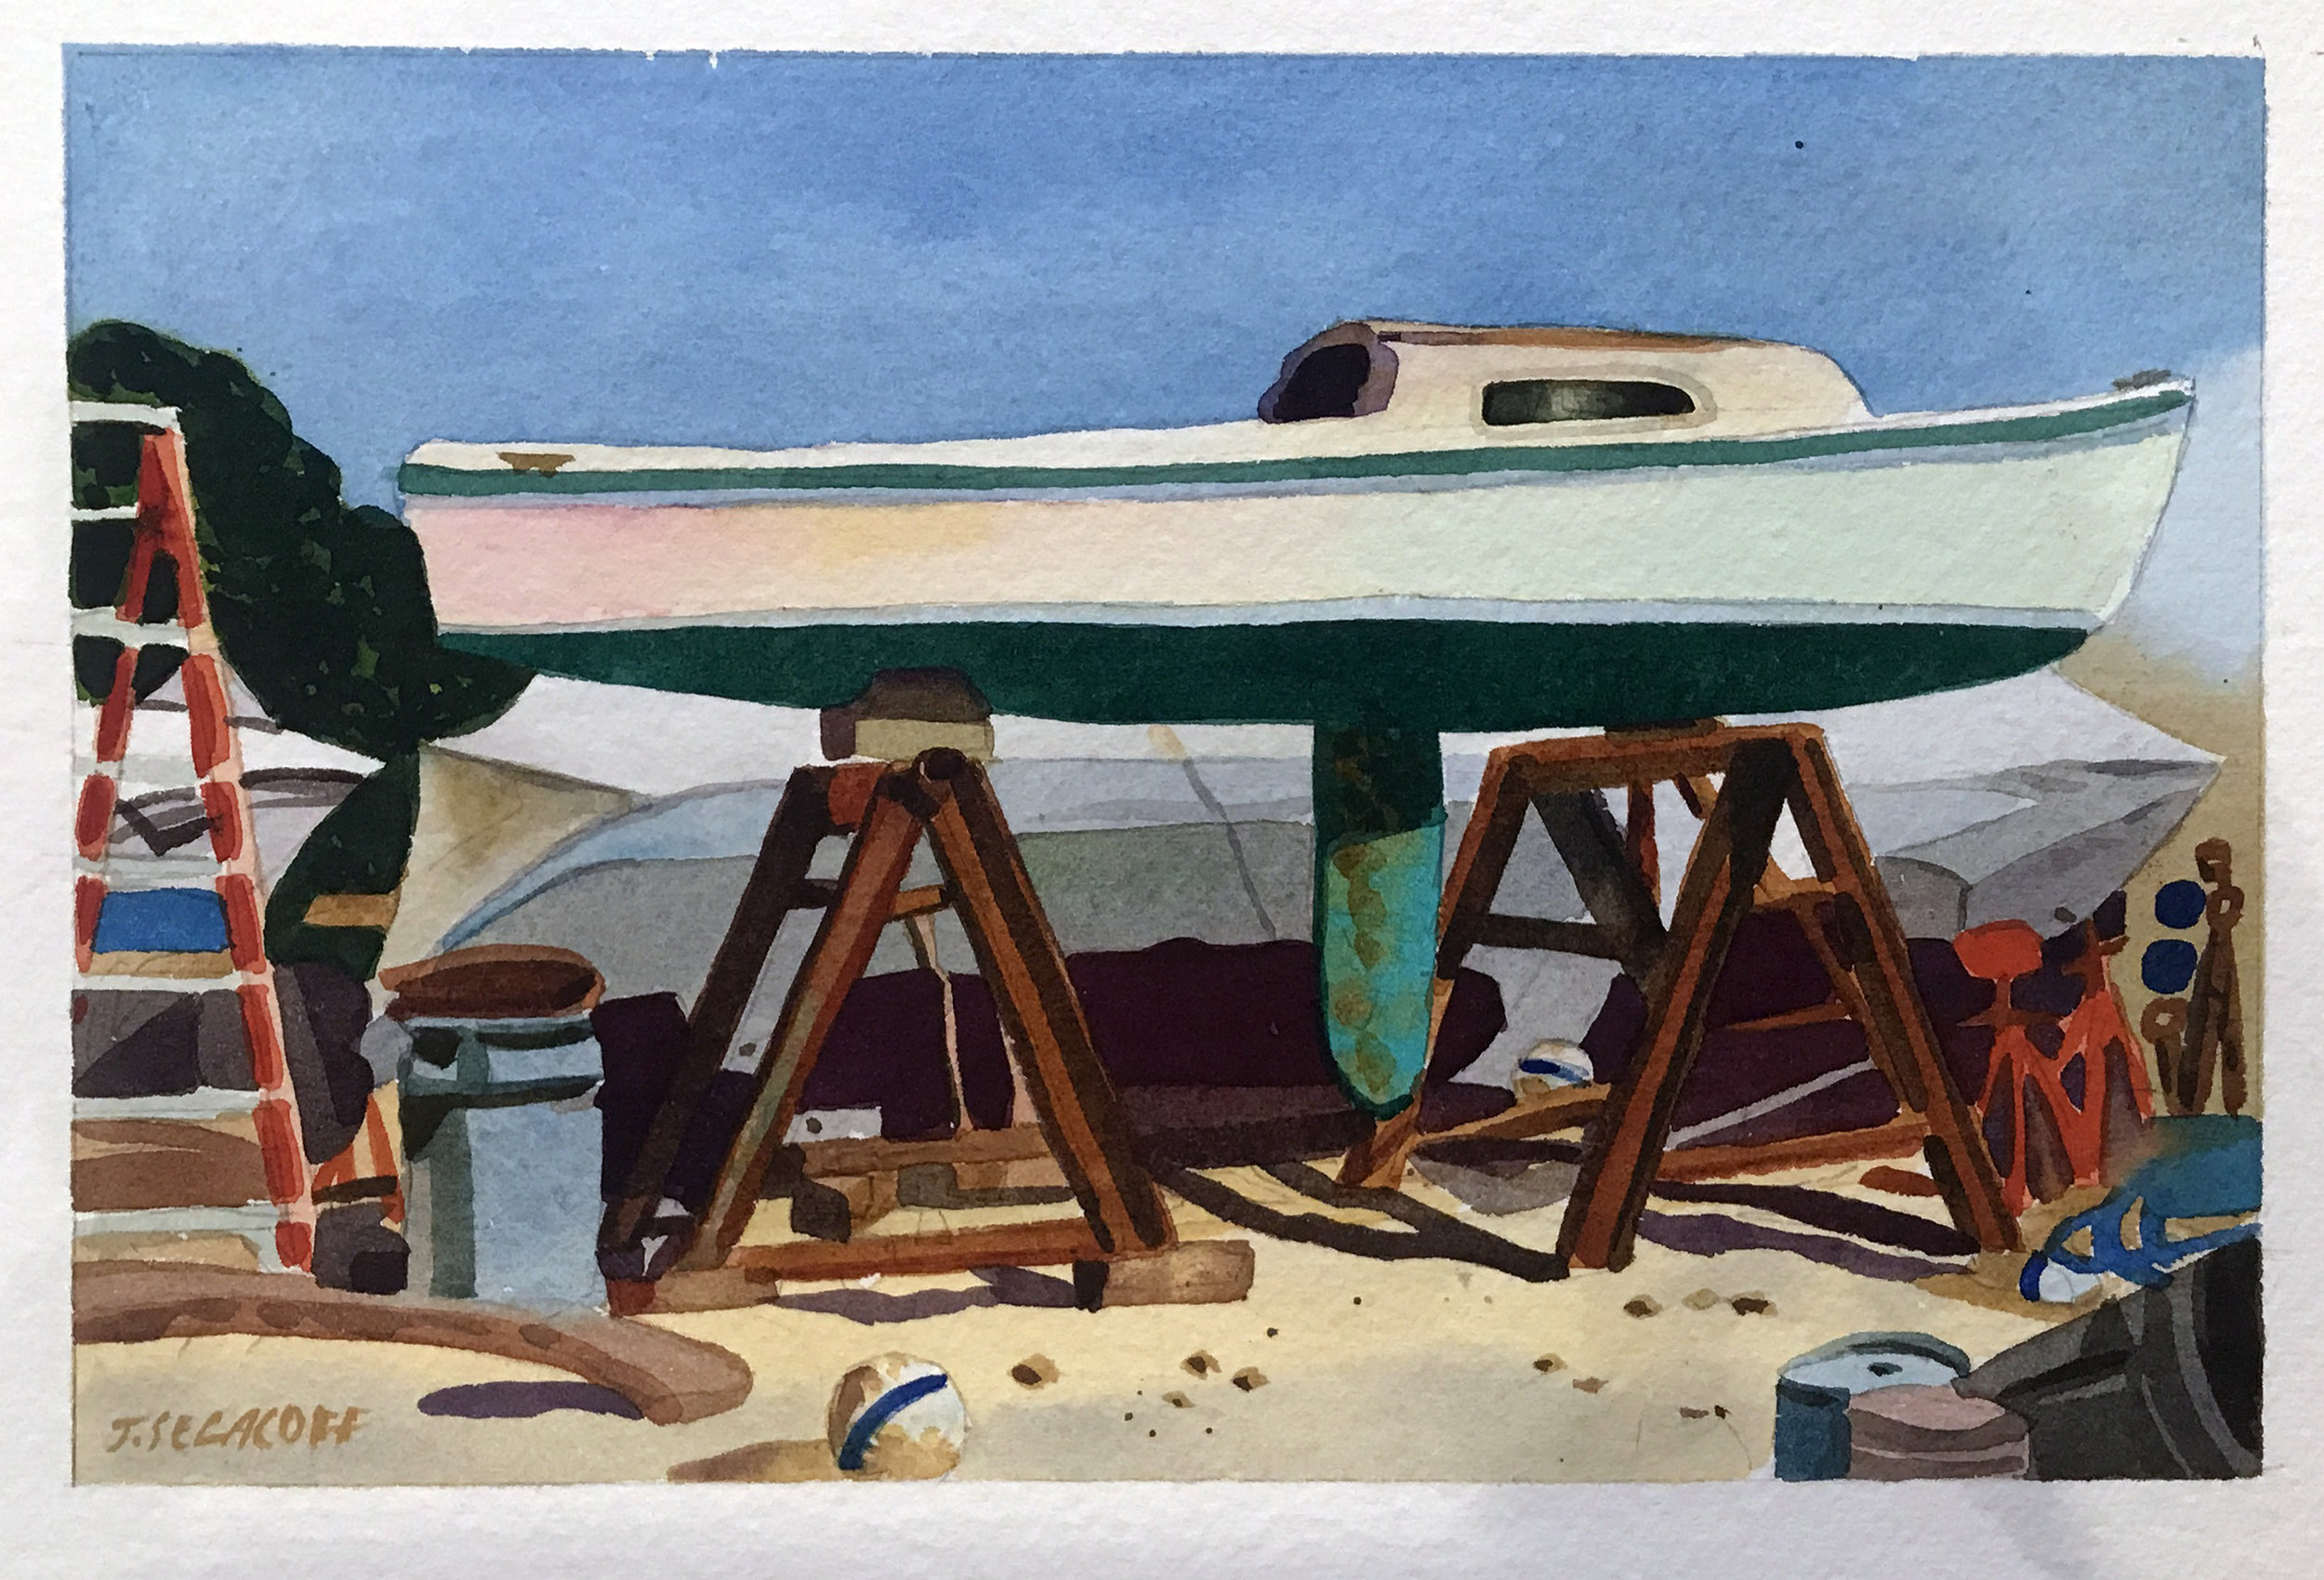 """Sailboat without Mast, Wellfleet Boatyard,  watercolor on paper, 13 1/2"""" x 15 1/2"""", $600"""